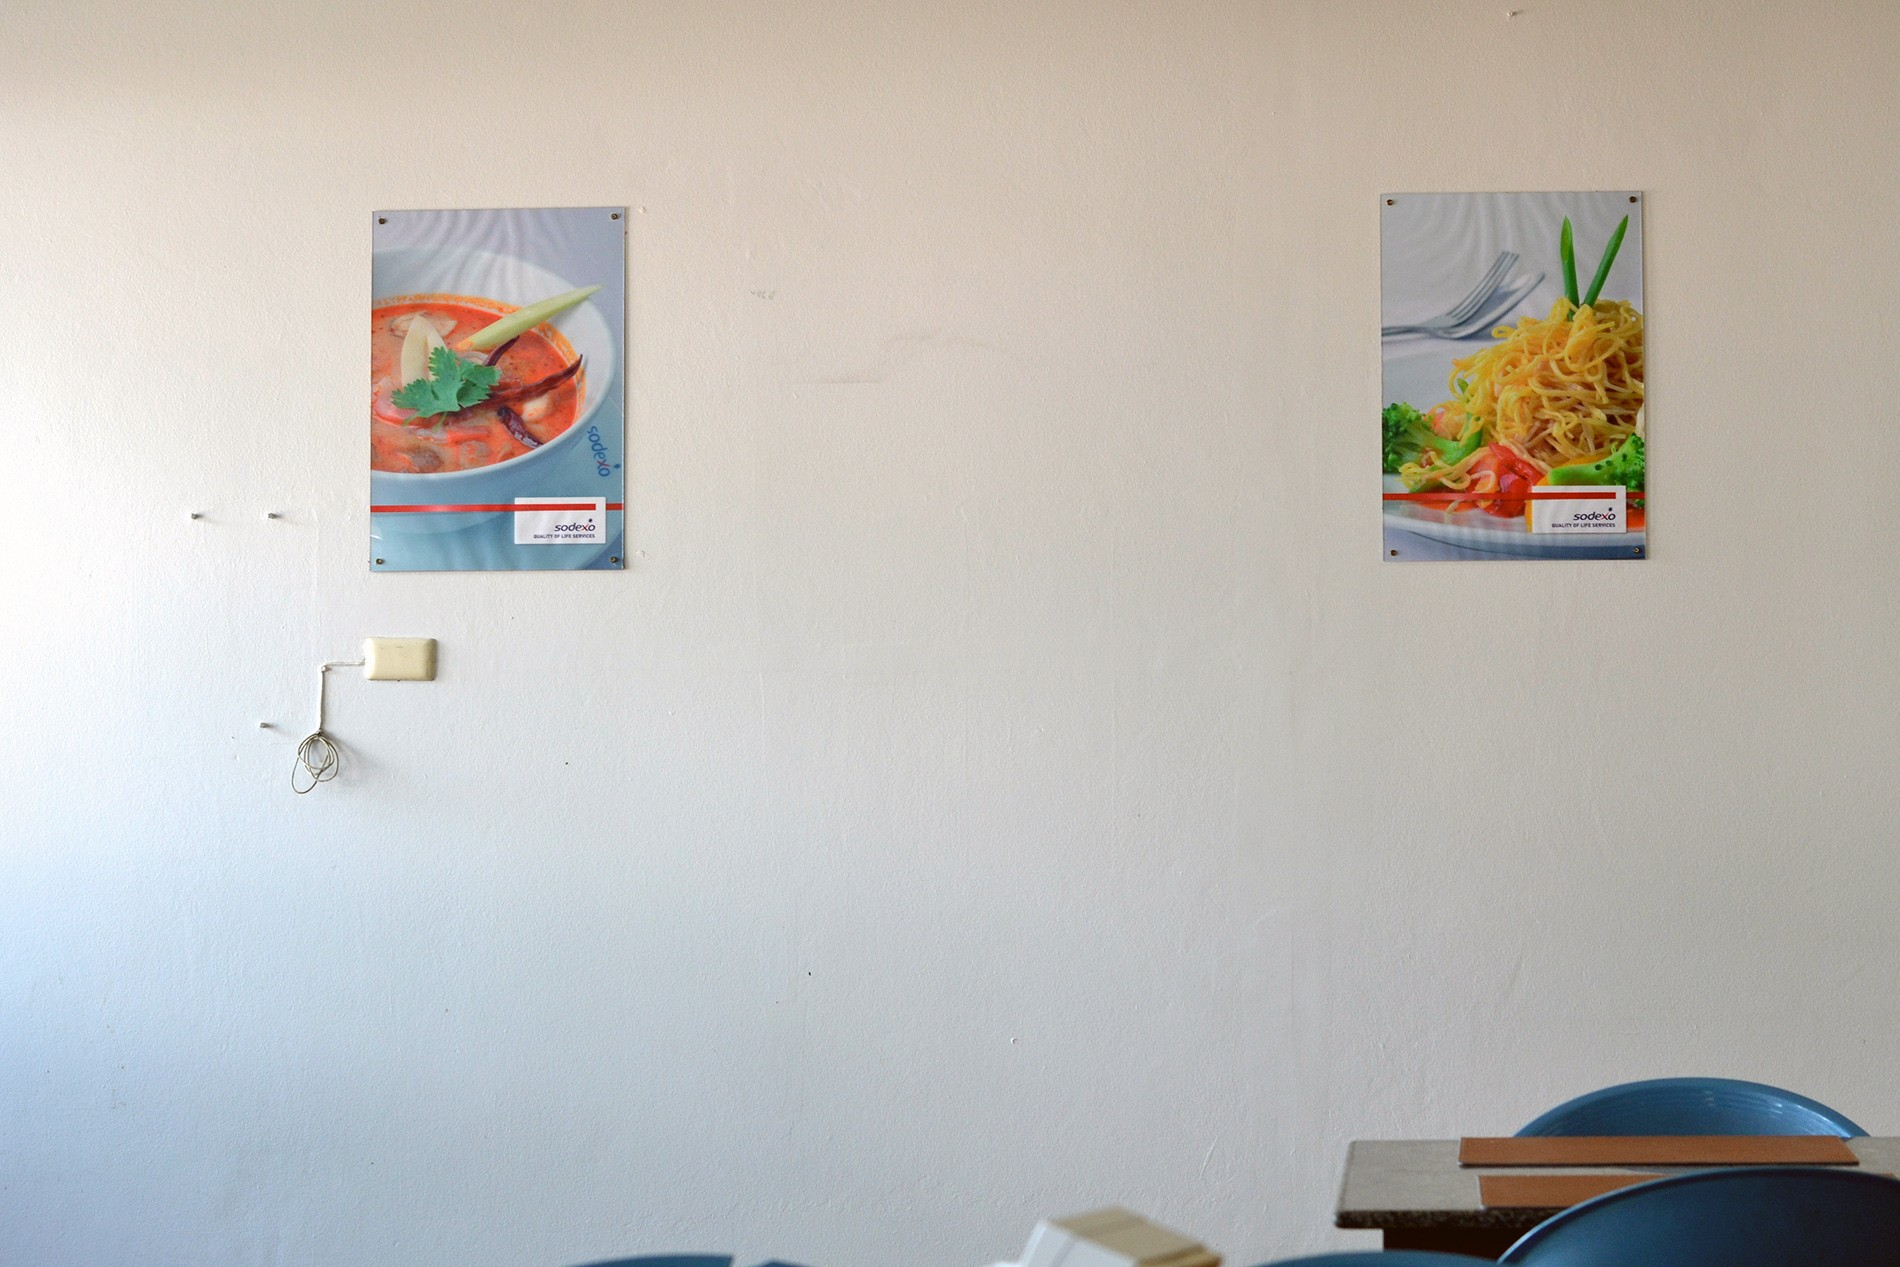 hospital-cafeteria-posters